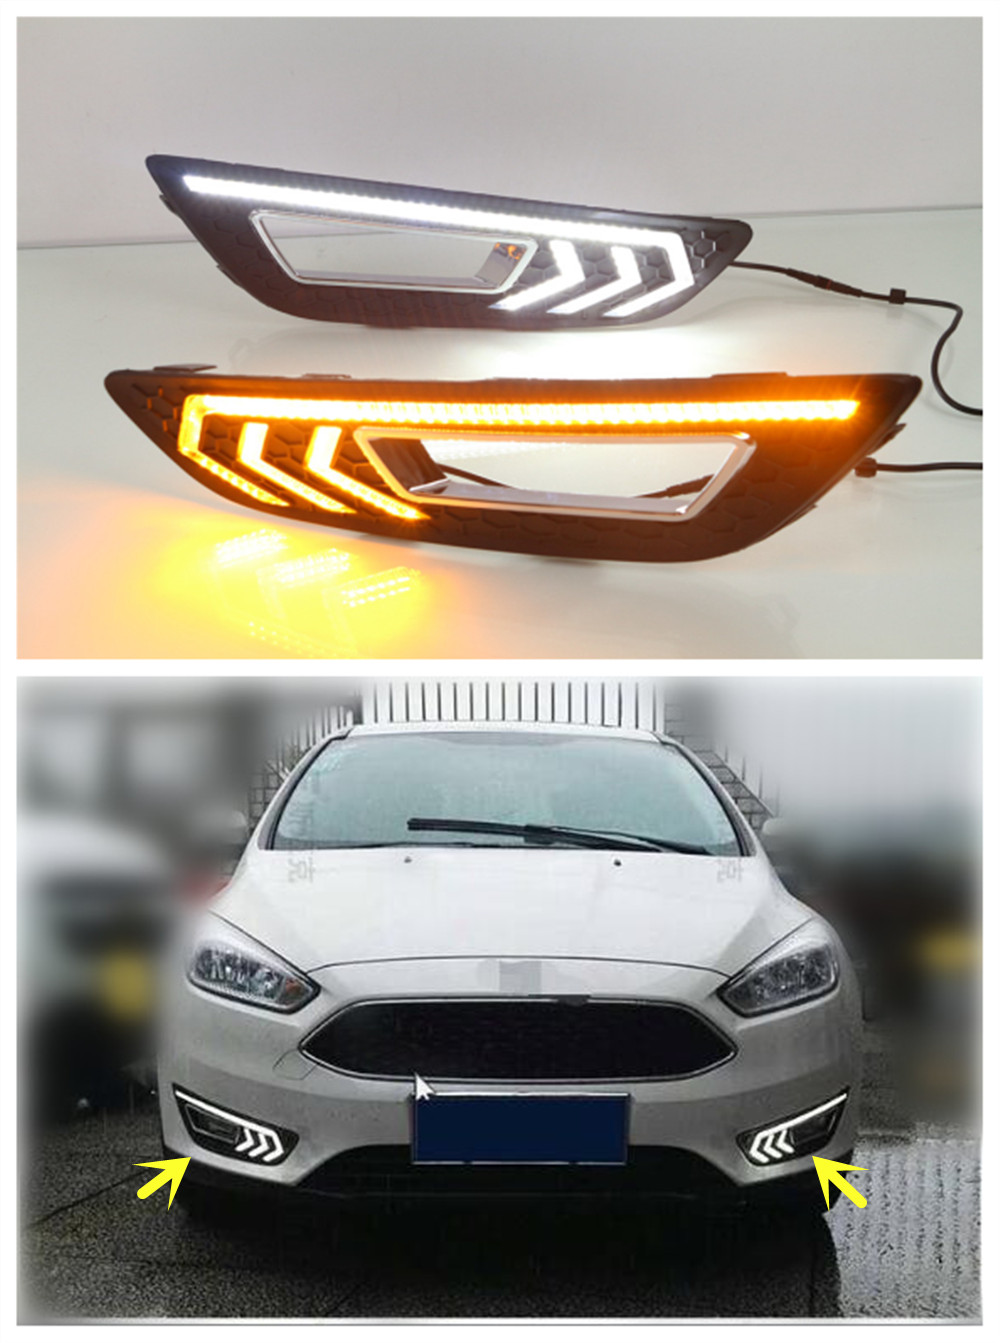 Turn Signal With Dimming Style Relay 12v LED Auto Car Daytime Running Light DRL Front Bumper Fog Lamp For Ford Focus 4 2015 2016<br><br>Aliexpress